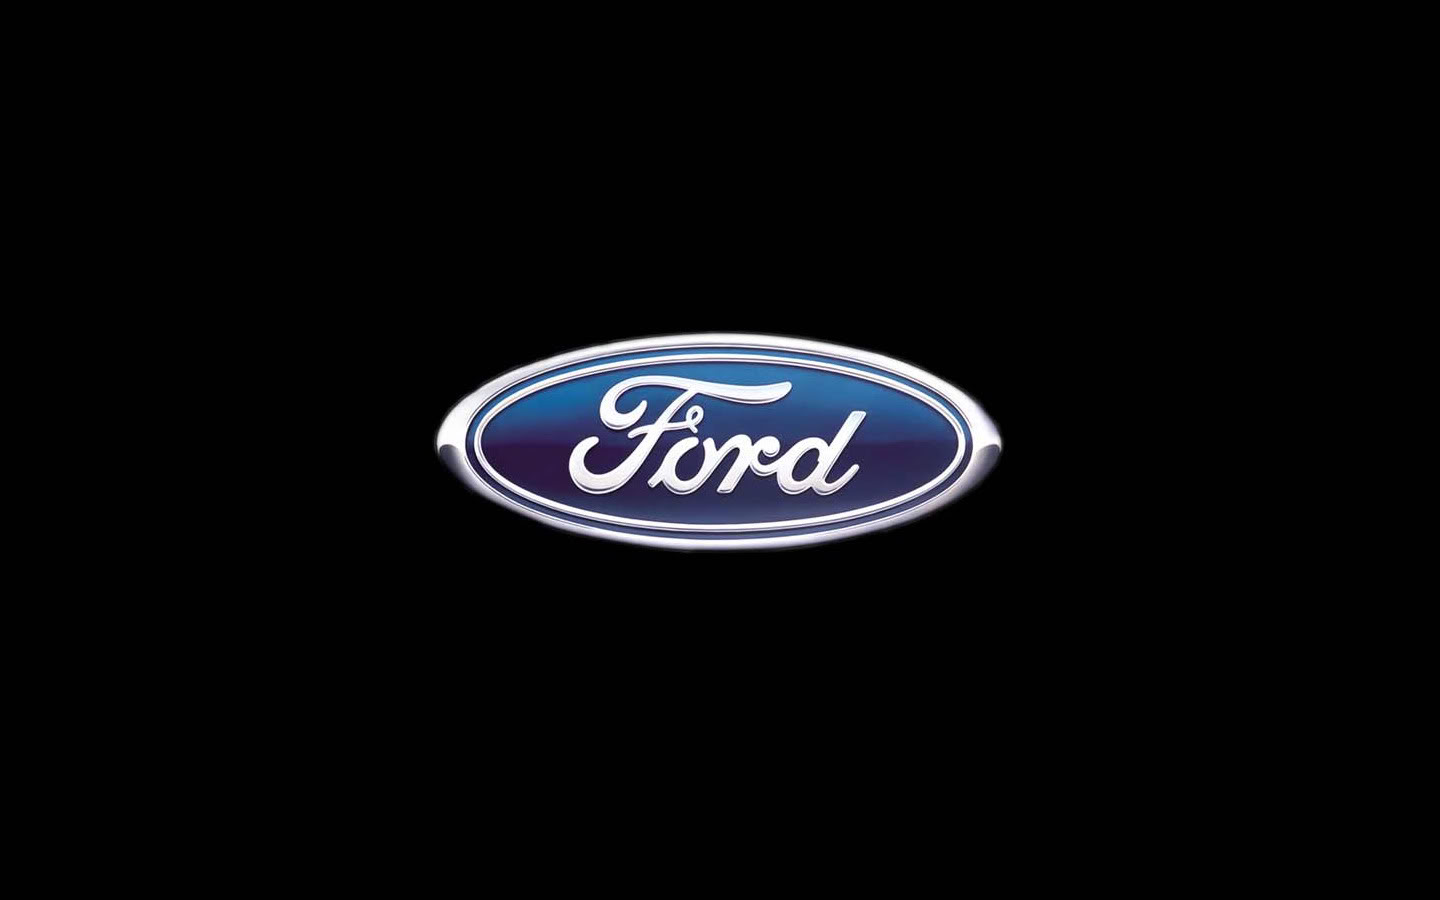 Ford Logo Wallpaper Free Downloads